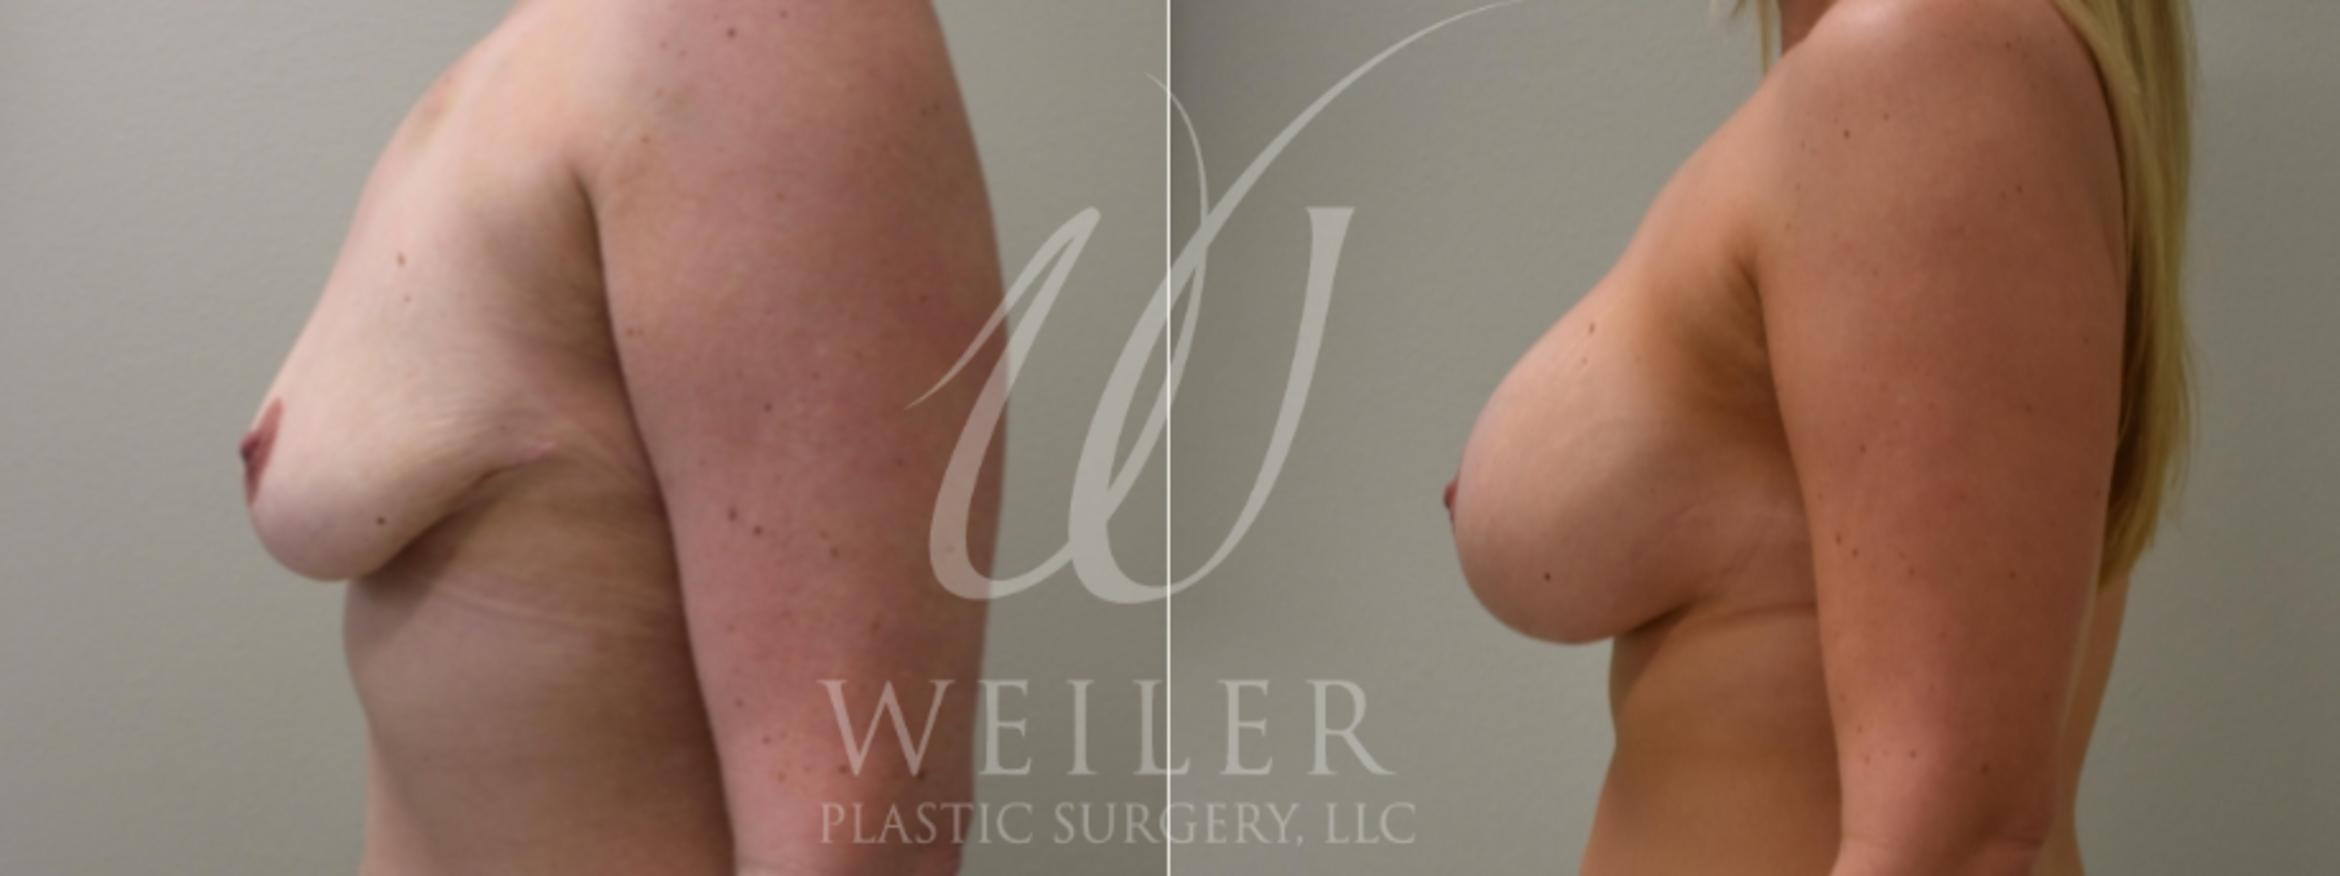 Breast Augmentation Before After Photos Patient 261 Baton